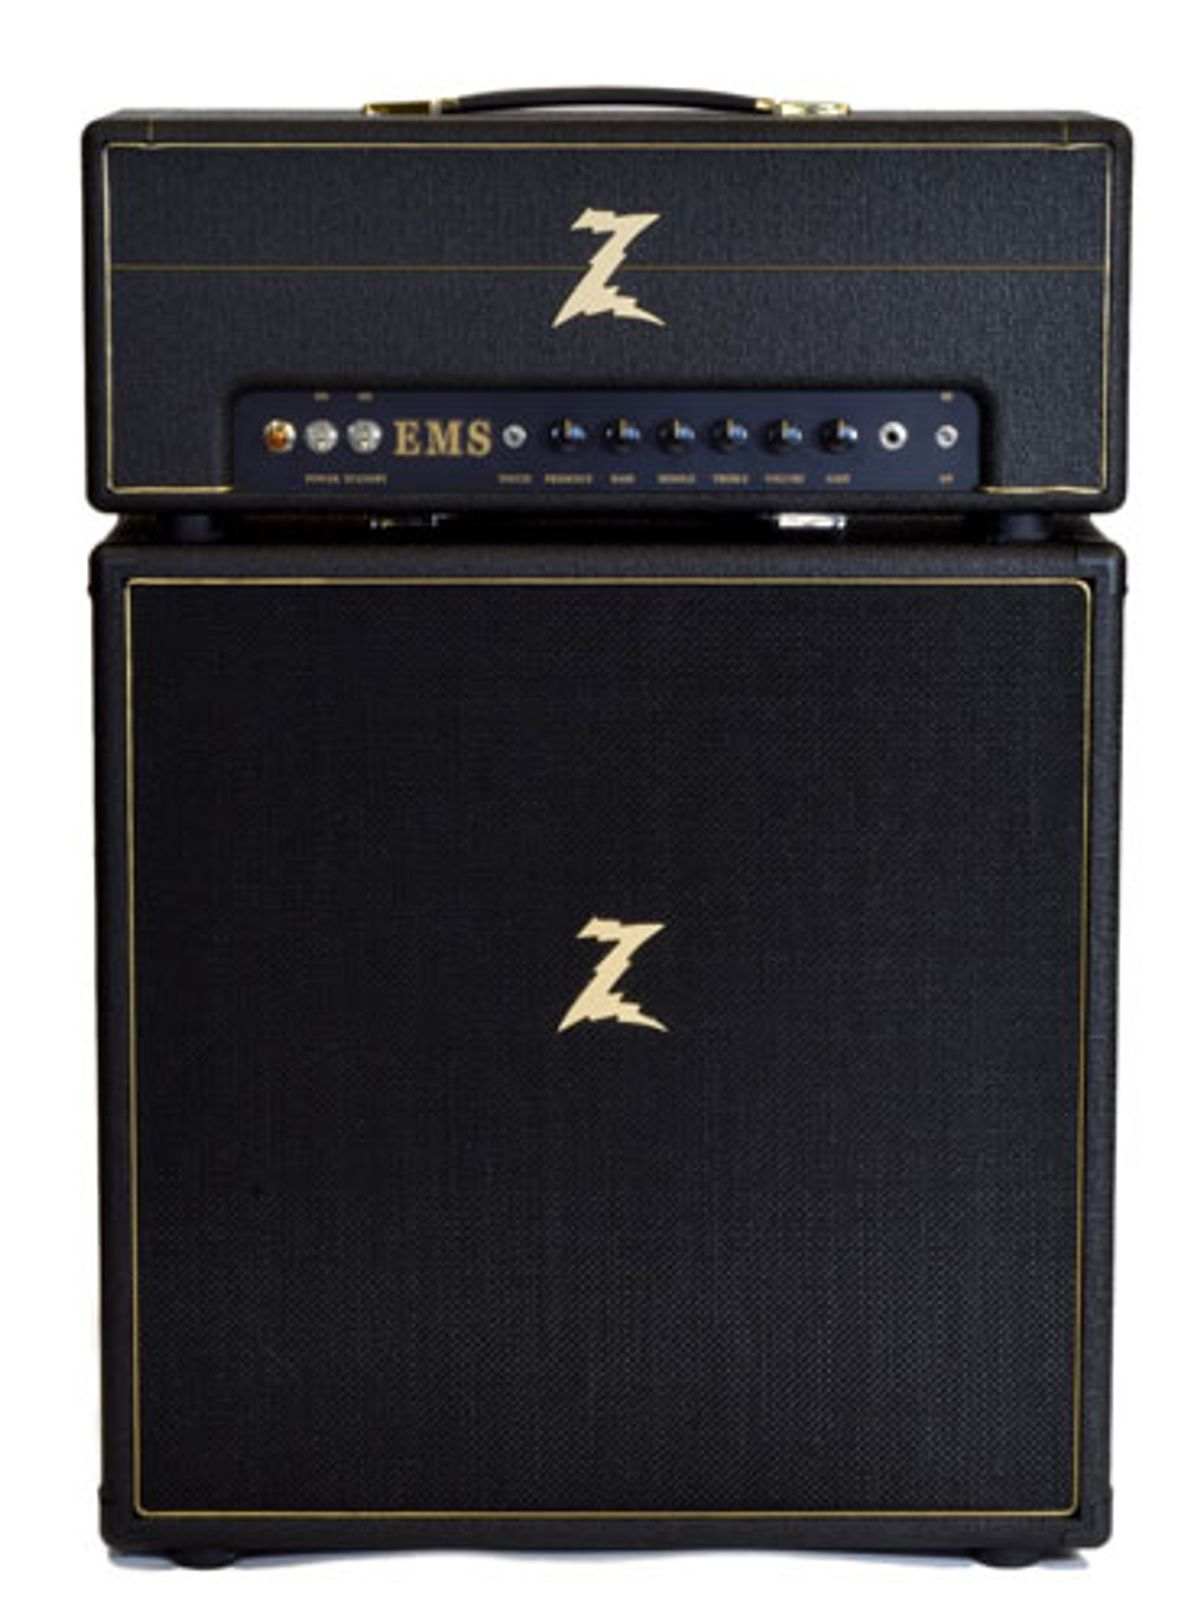 Dr. Z Amplification Releases the EMS